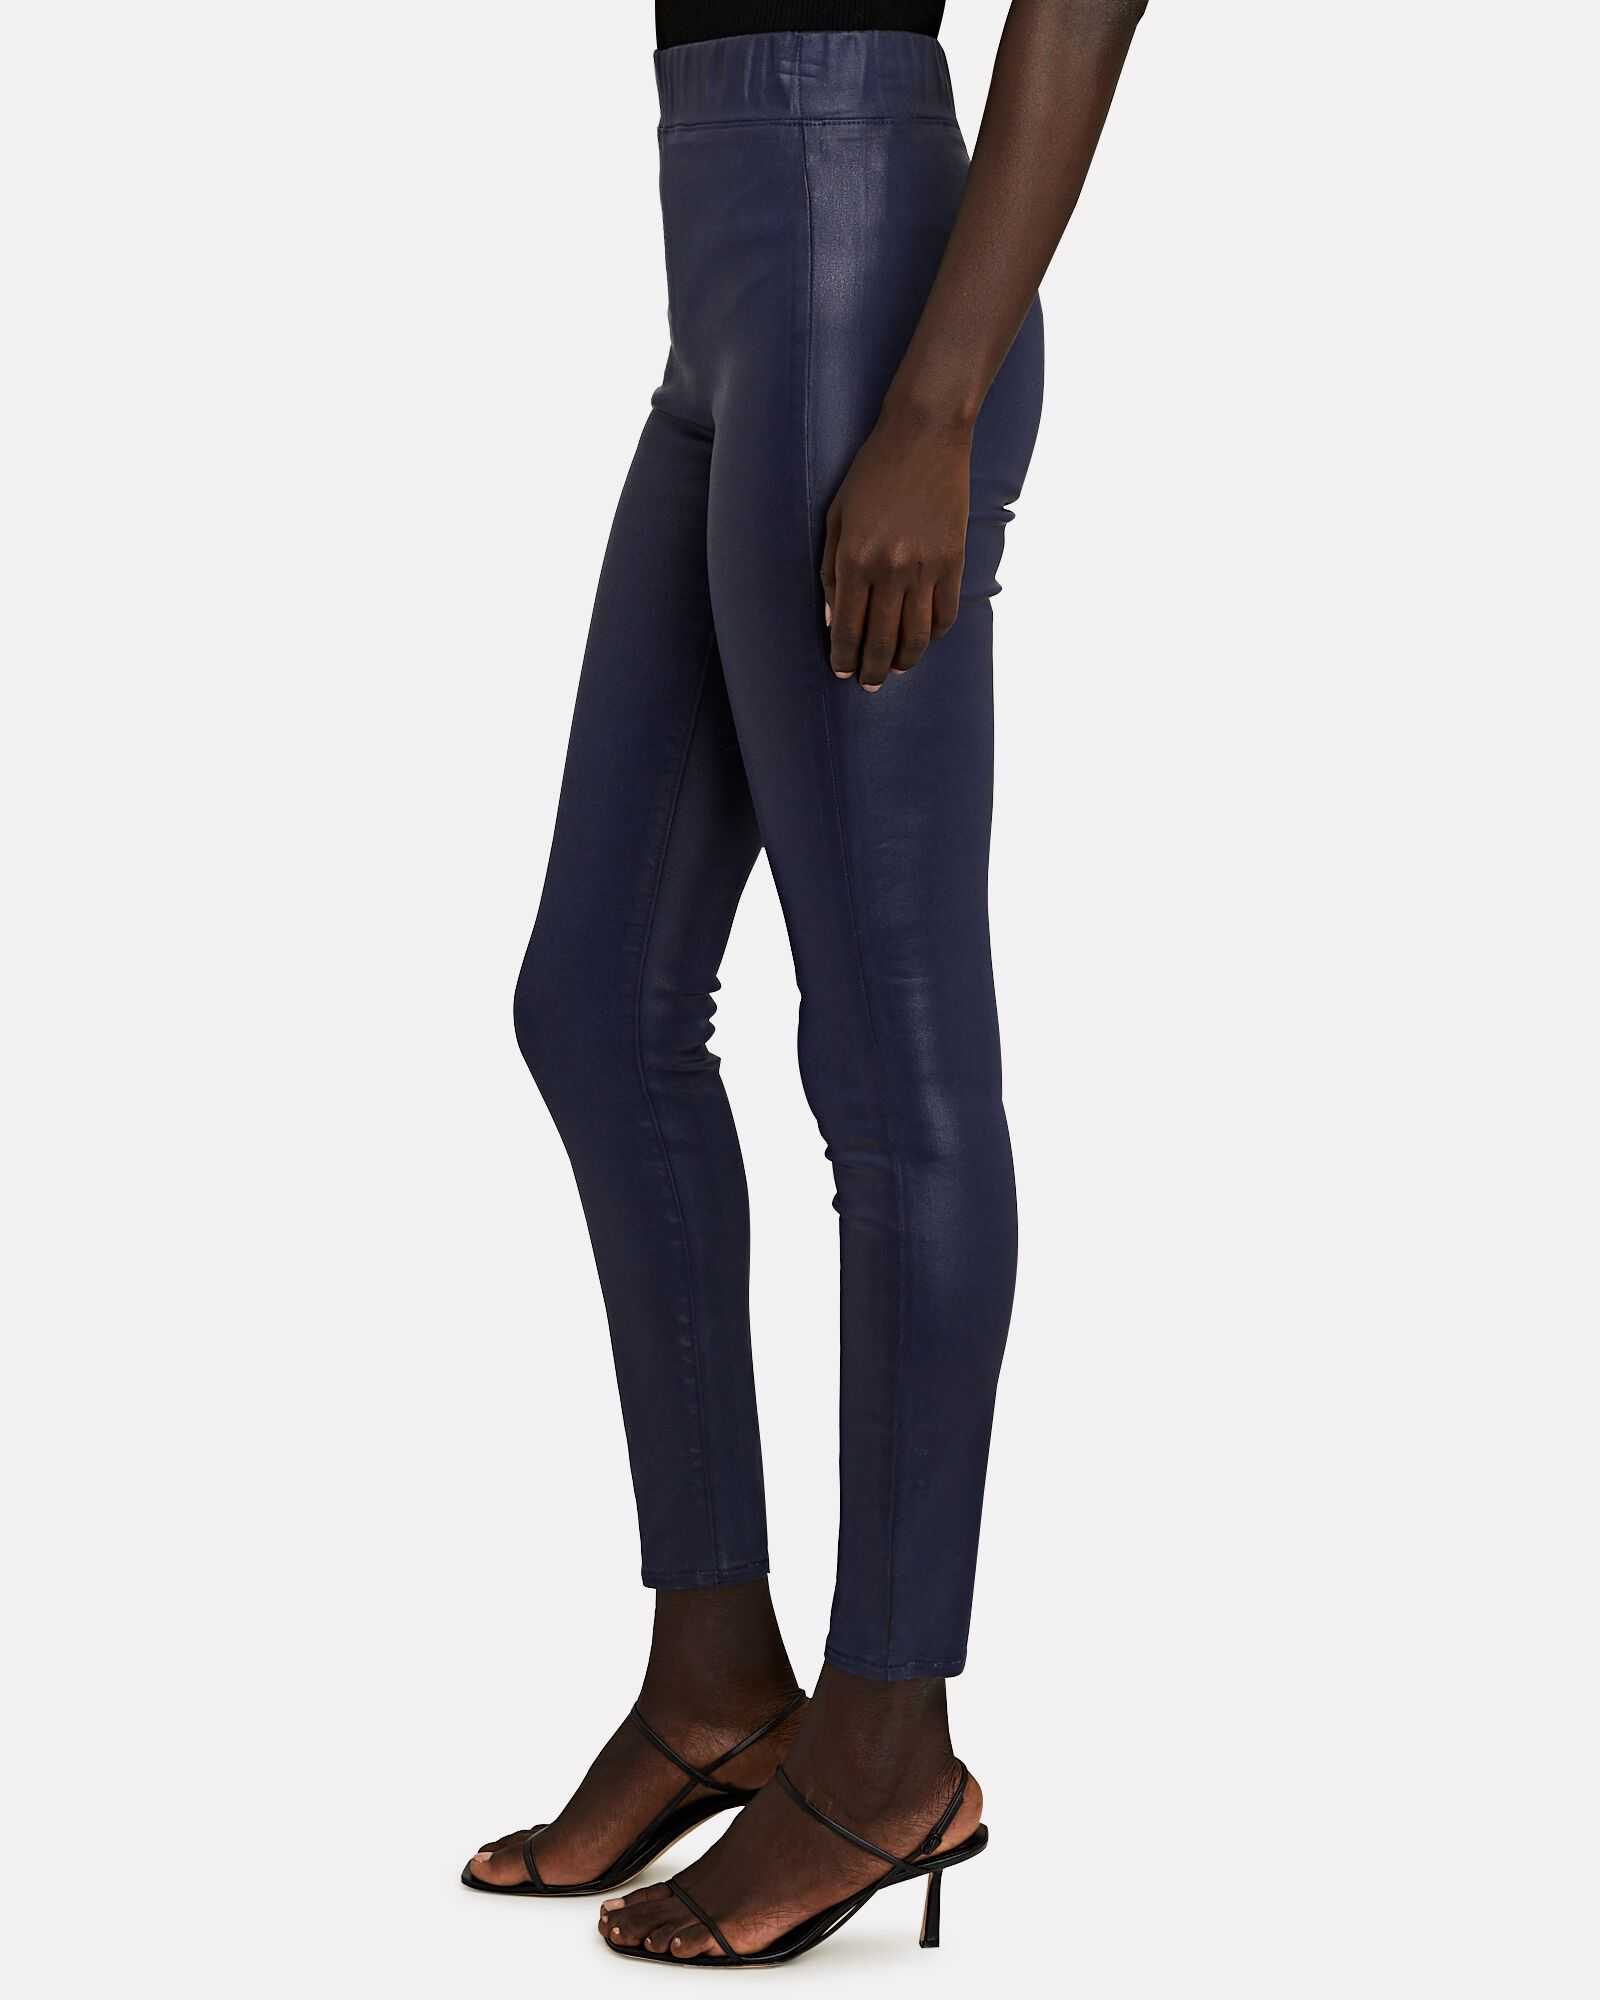 Rochelle Coated High-Rise Leggings, BLUE-DRK, hi-res